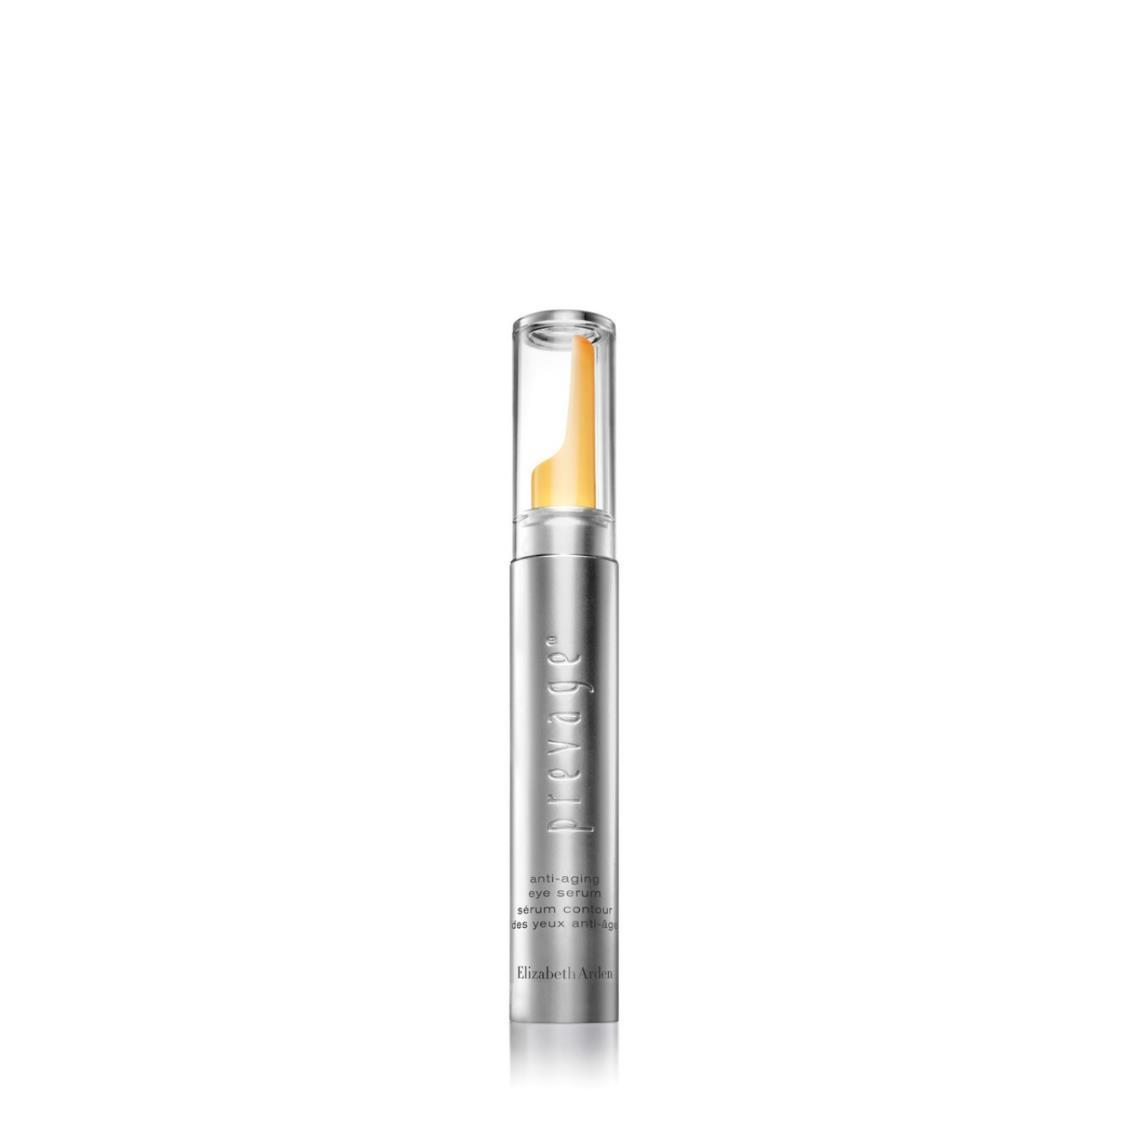 PREVAGE Anti-aging Eye Cream SPF 15 PA  15ml